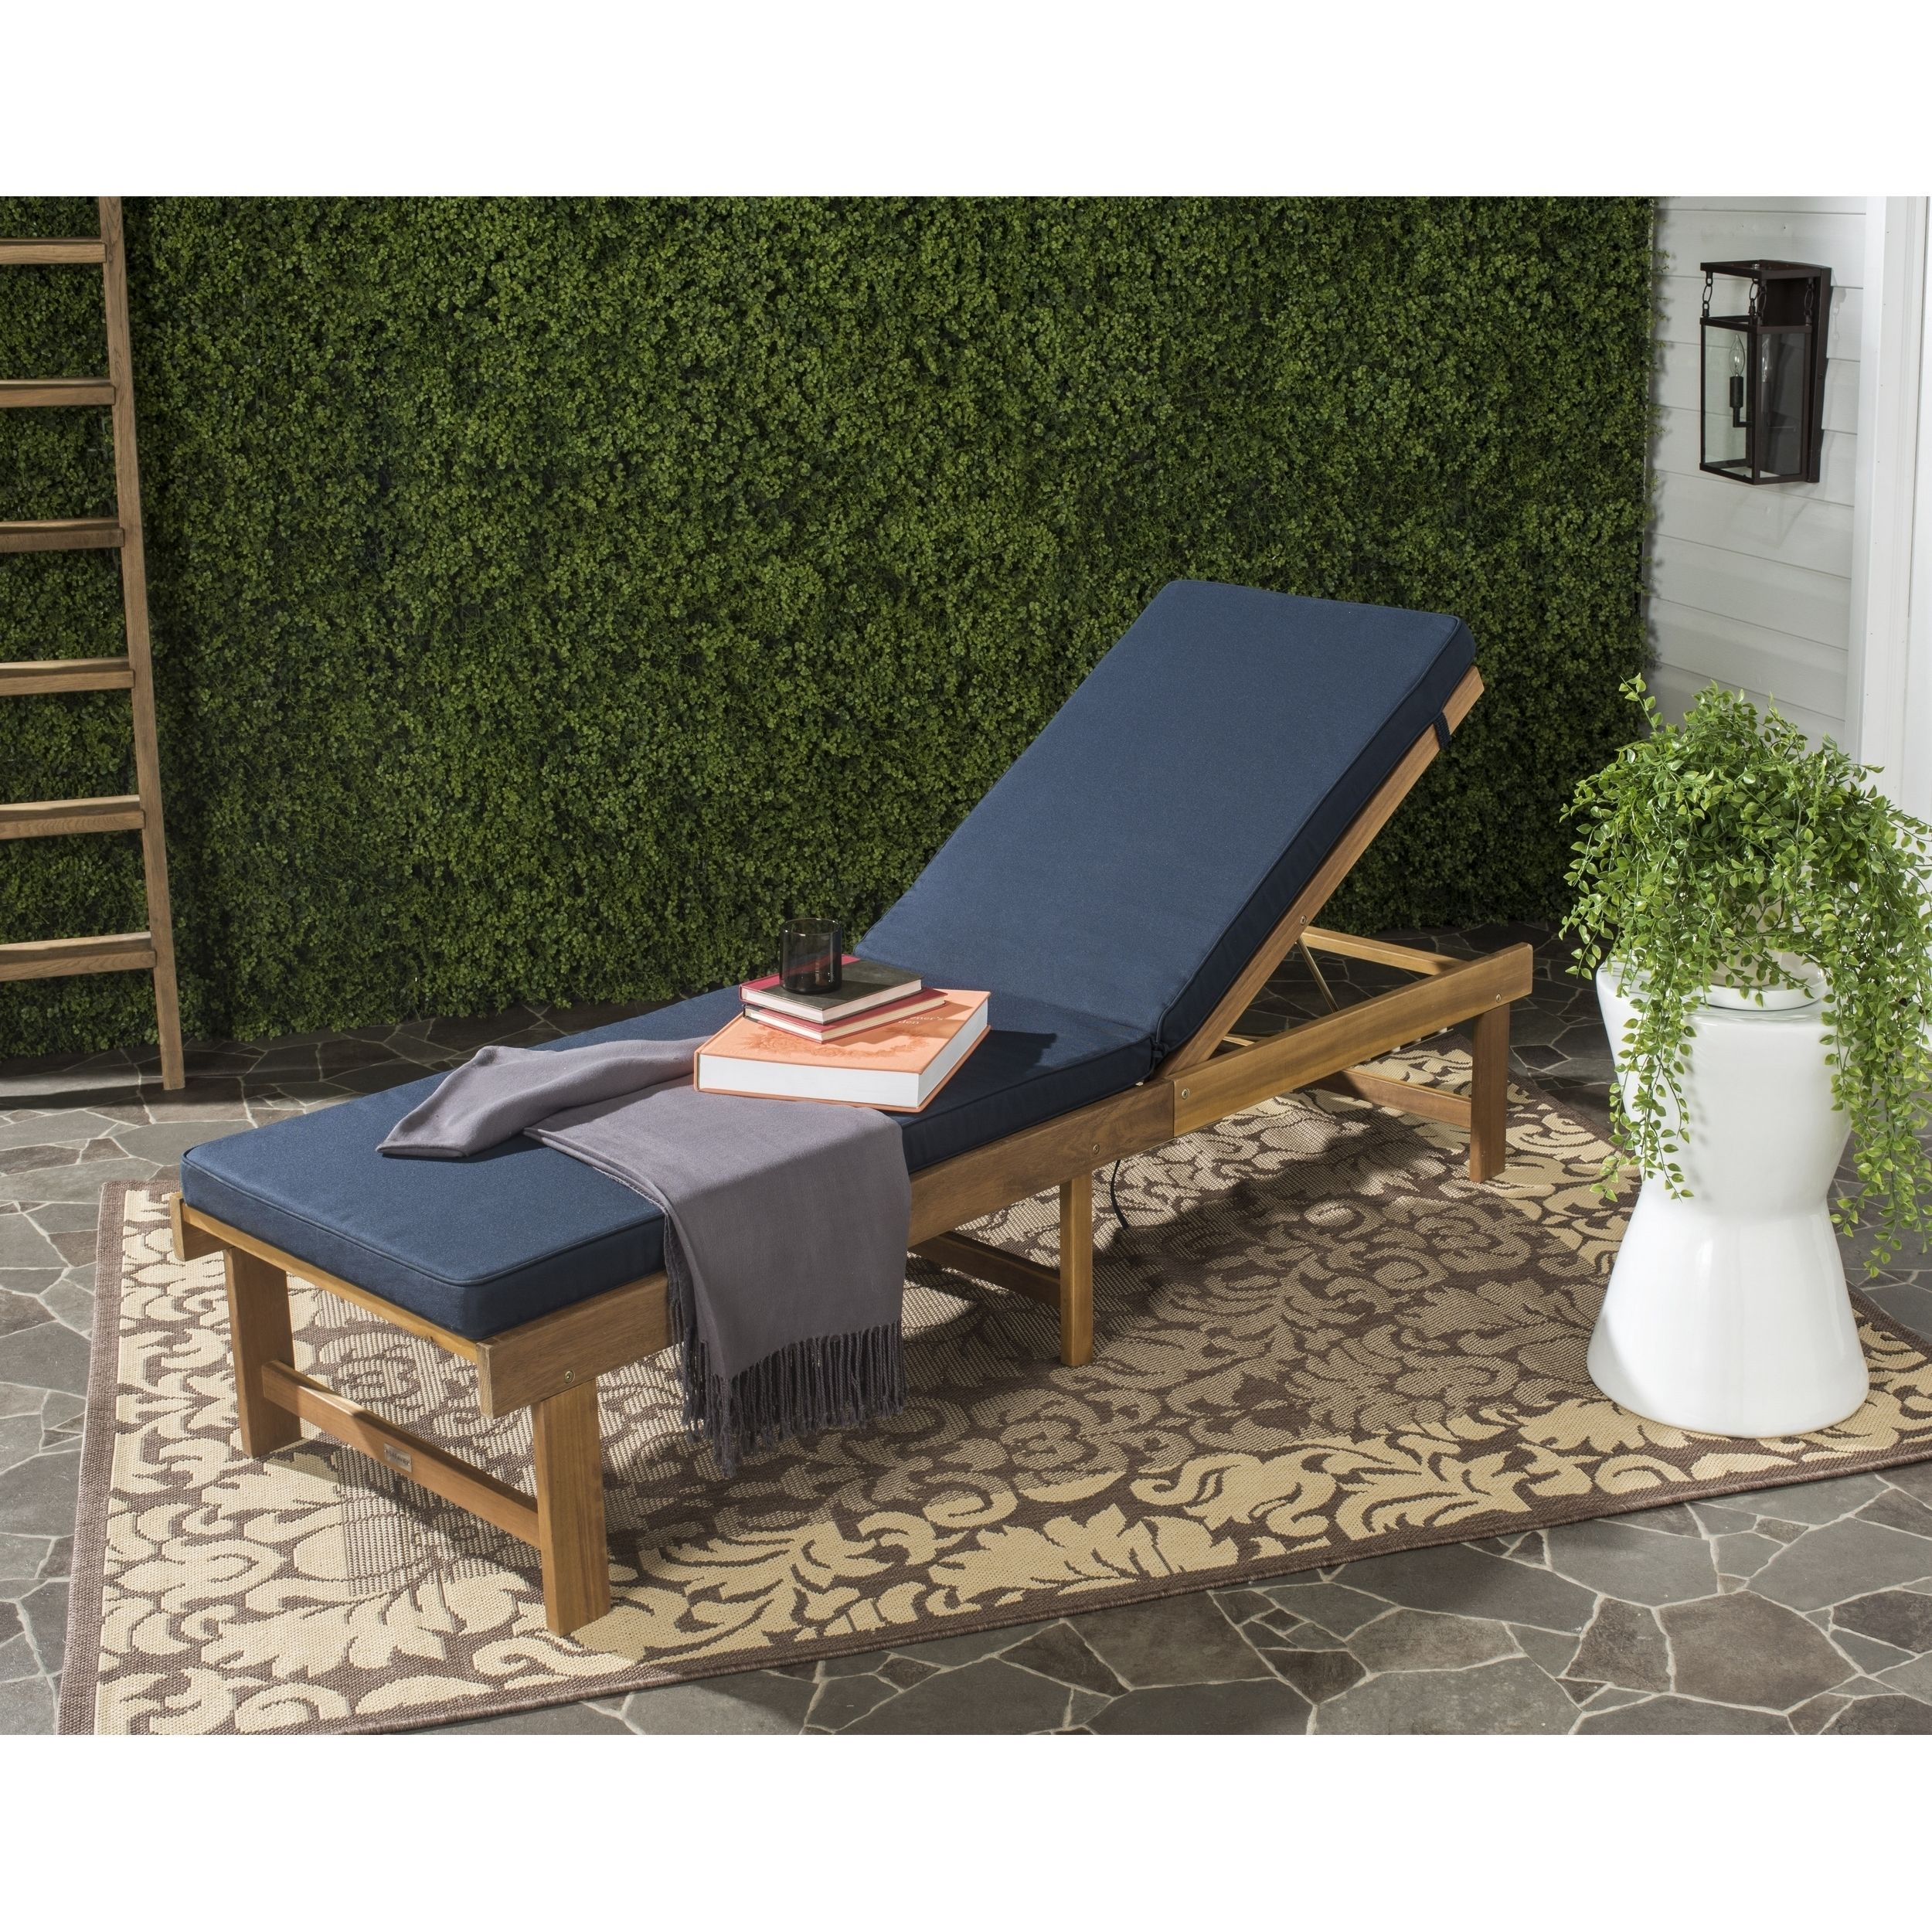 safavieh outdoor living inglewood brown navy chaise lounge chair rh pinterest fr